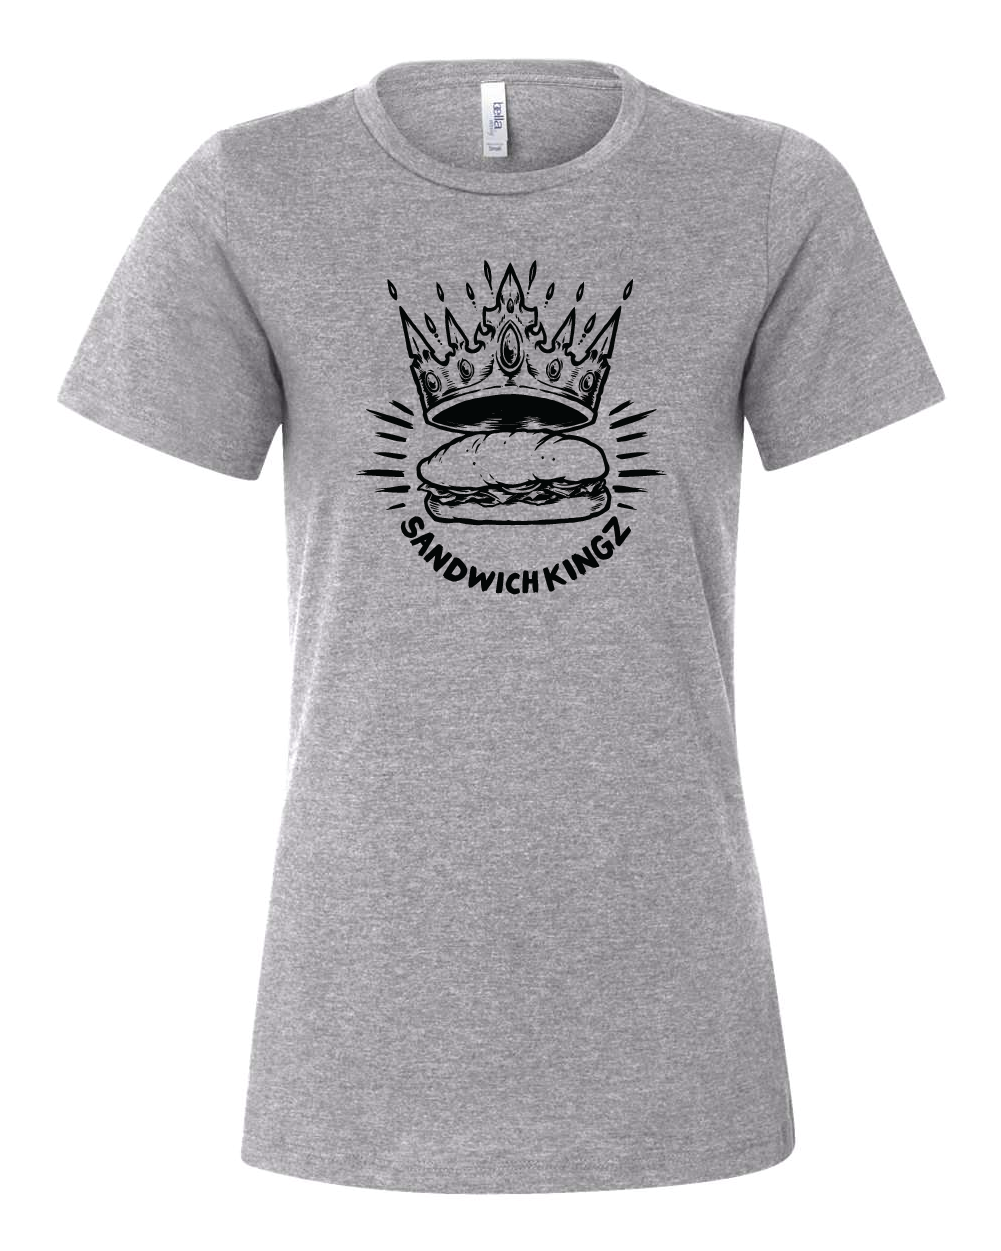 Sandwich Kingz - Ladies Tee